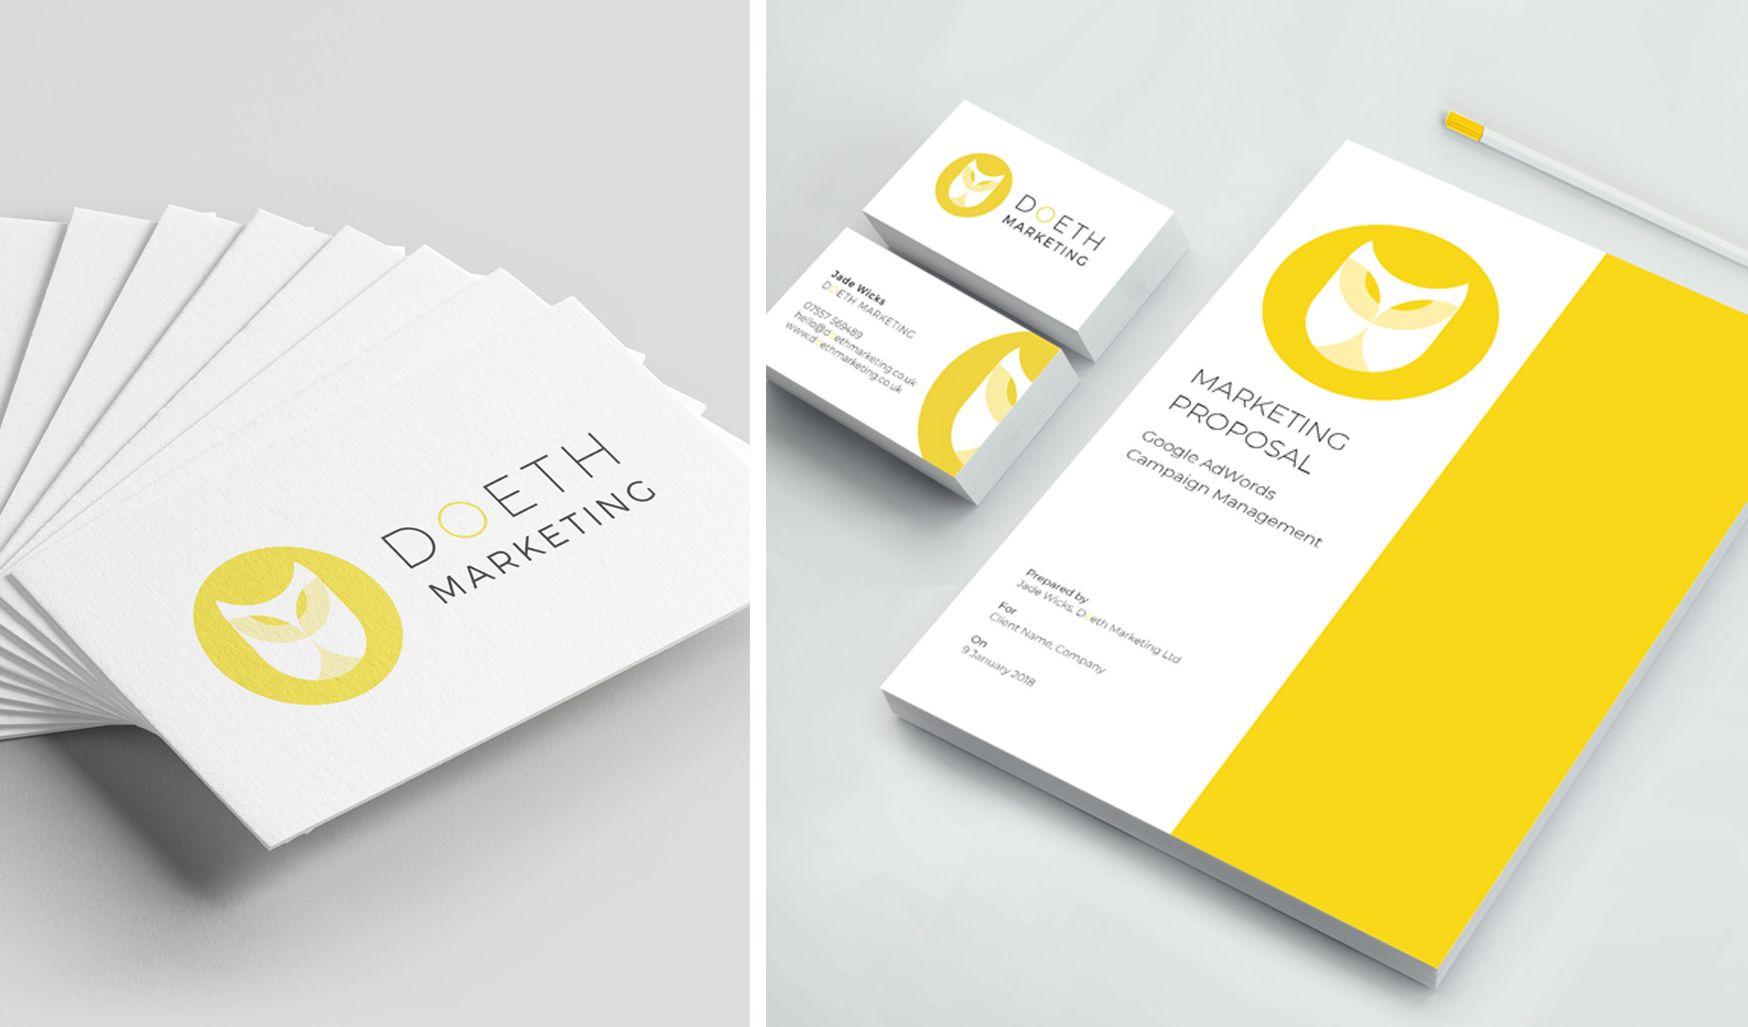 Doeth Marketing Branding Business Cards And Proposal Brand Marketing Branding Brand Specialist